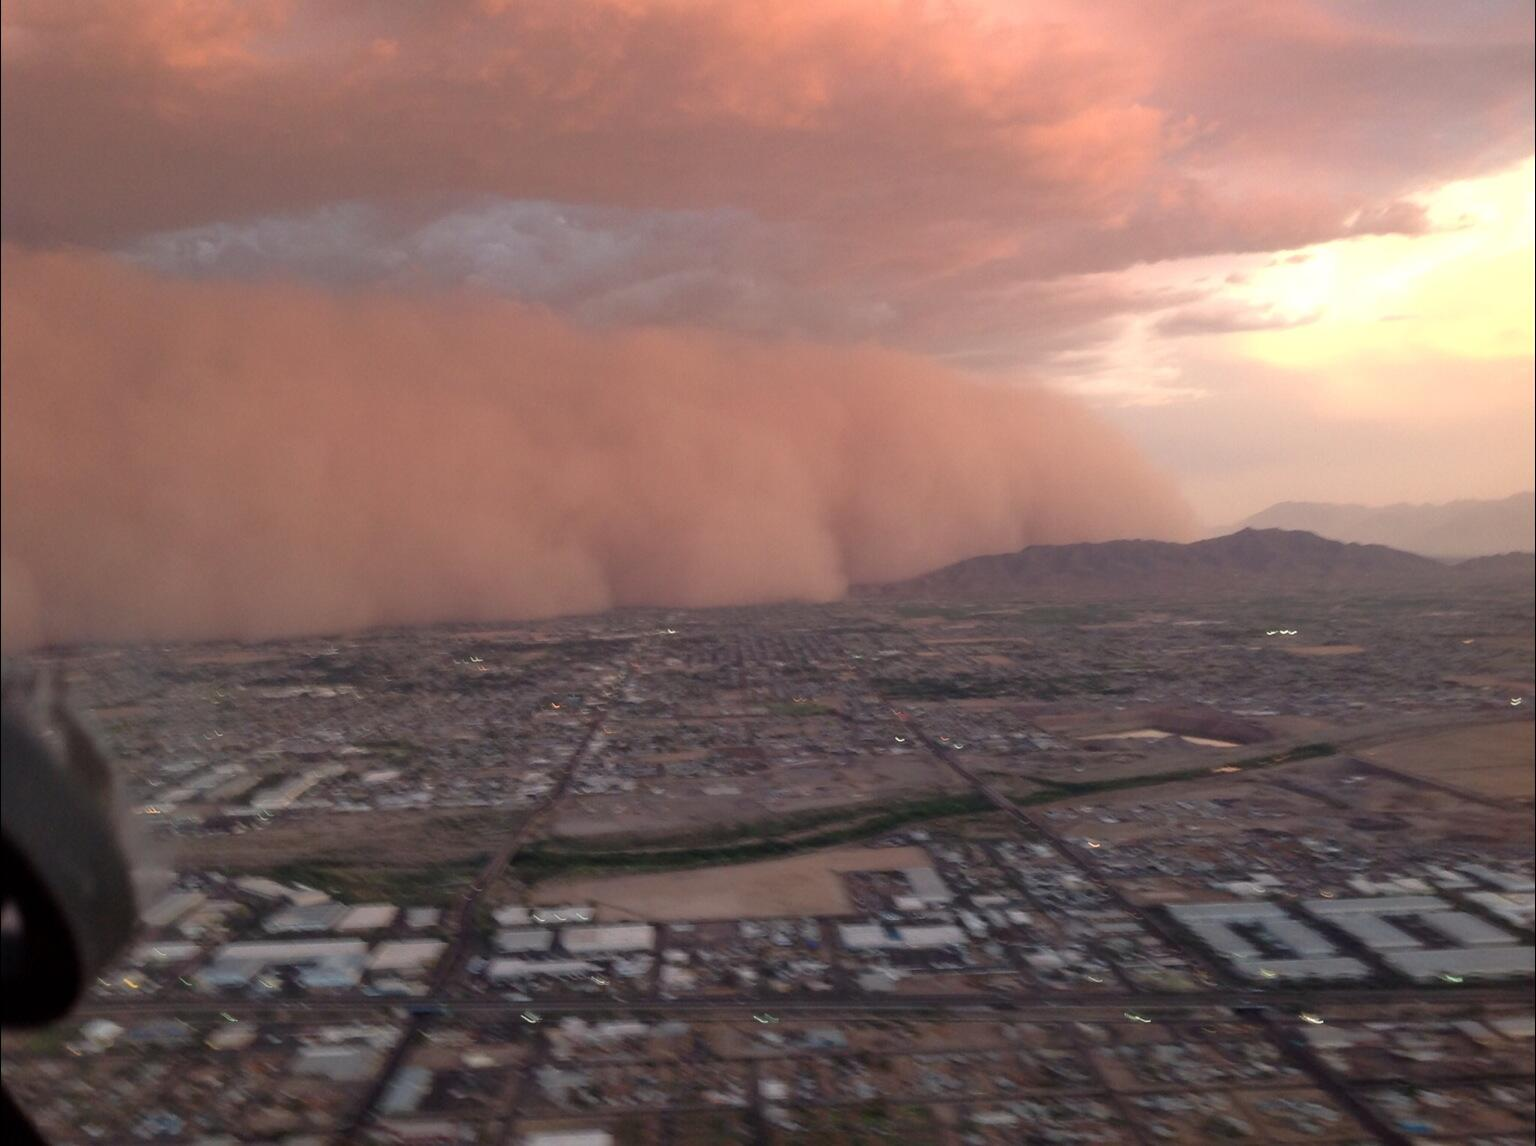 Taken from aircraft cockpit wow RT @redspirit145 The awesome Phoenix Dust storm that we escaped by 5 mins last night! http://t.co/Nvyyl3iCwm